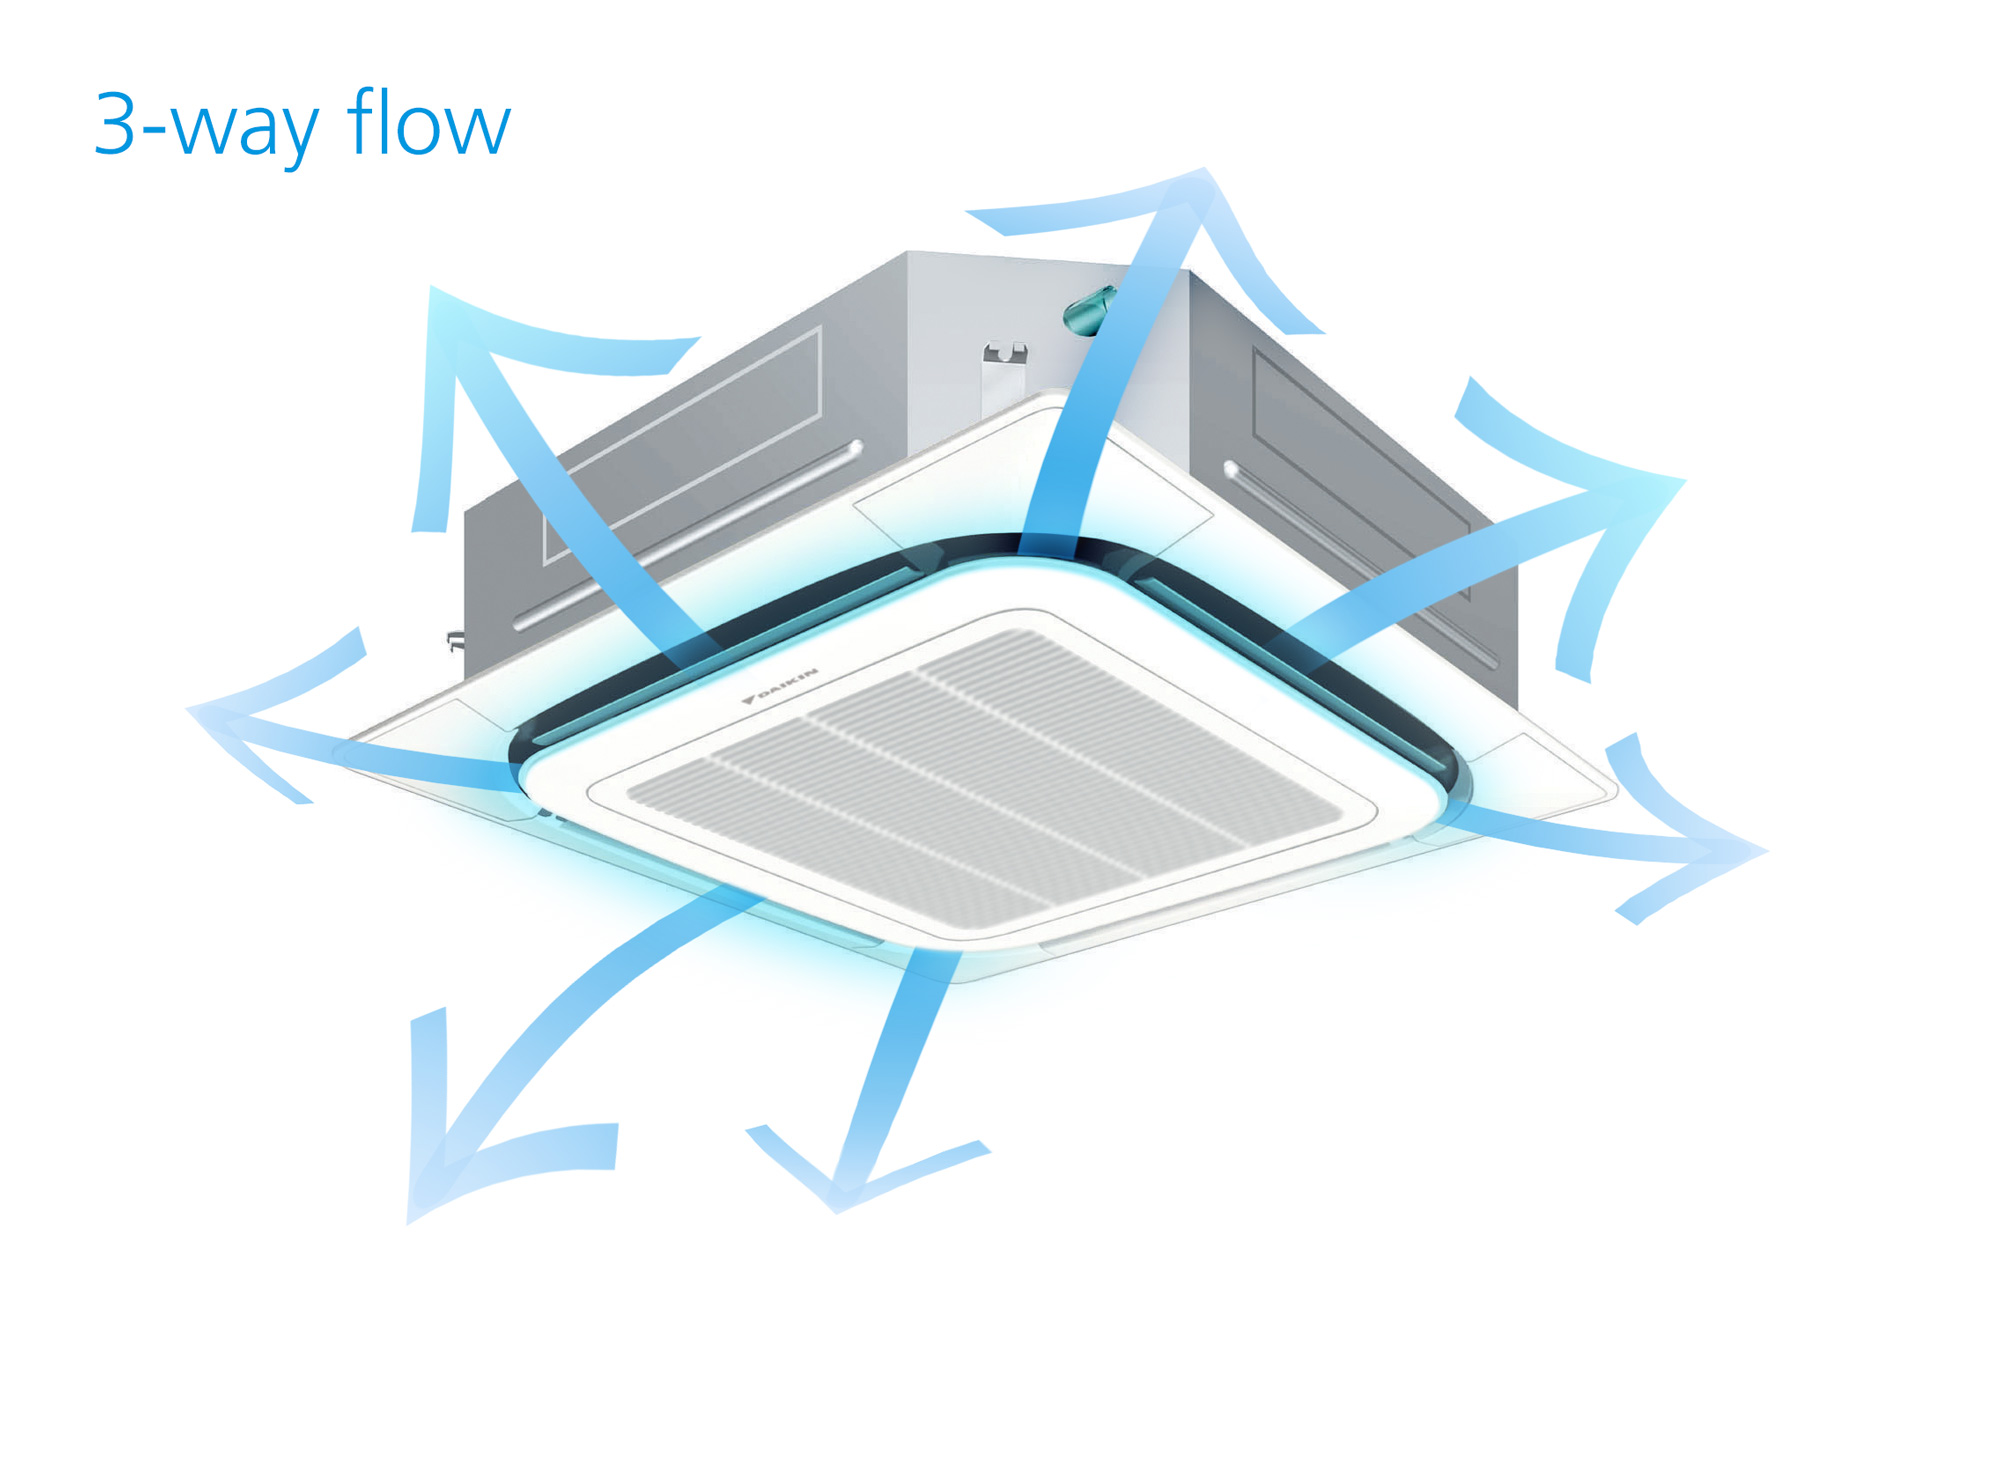 Typical airflow